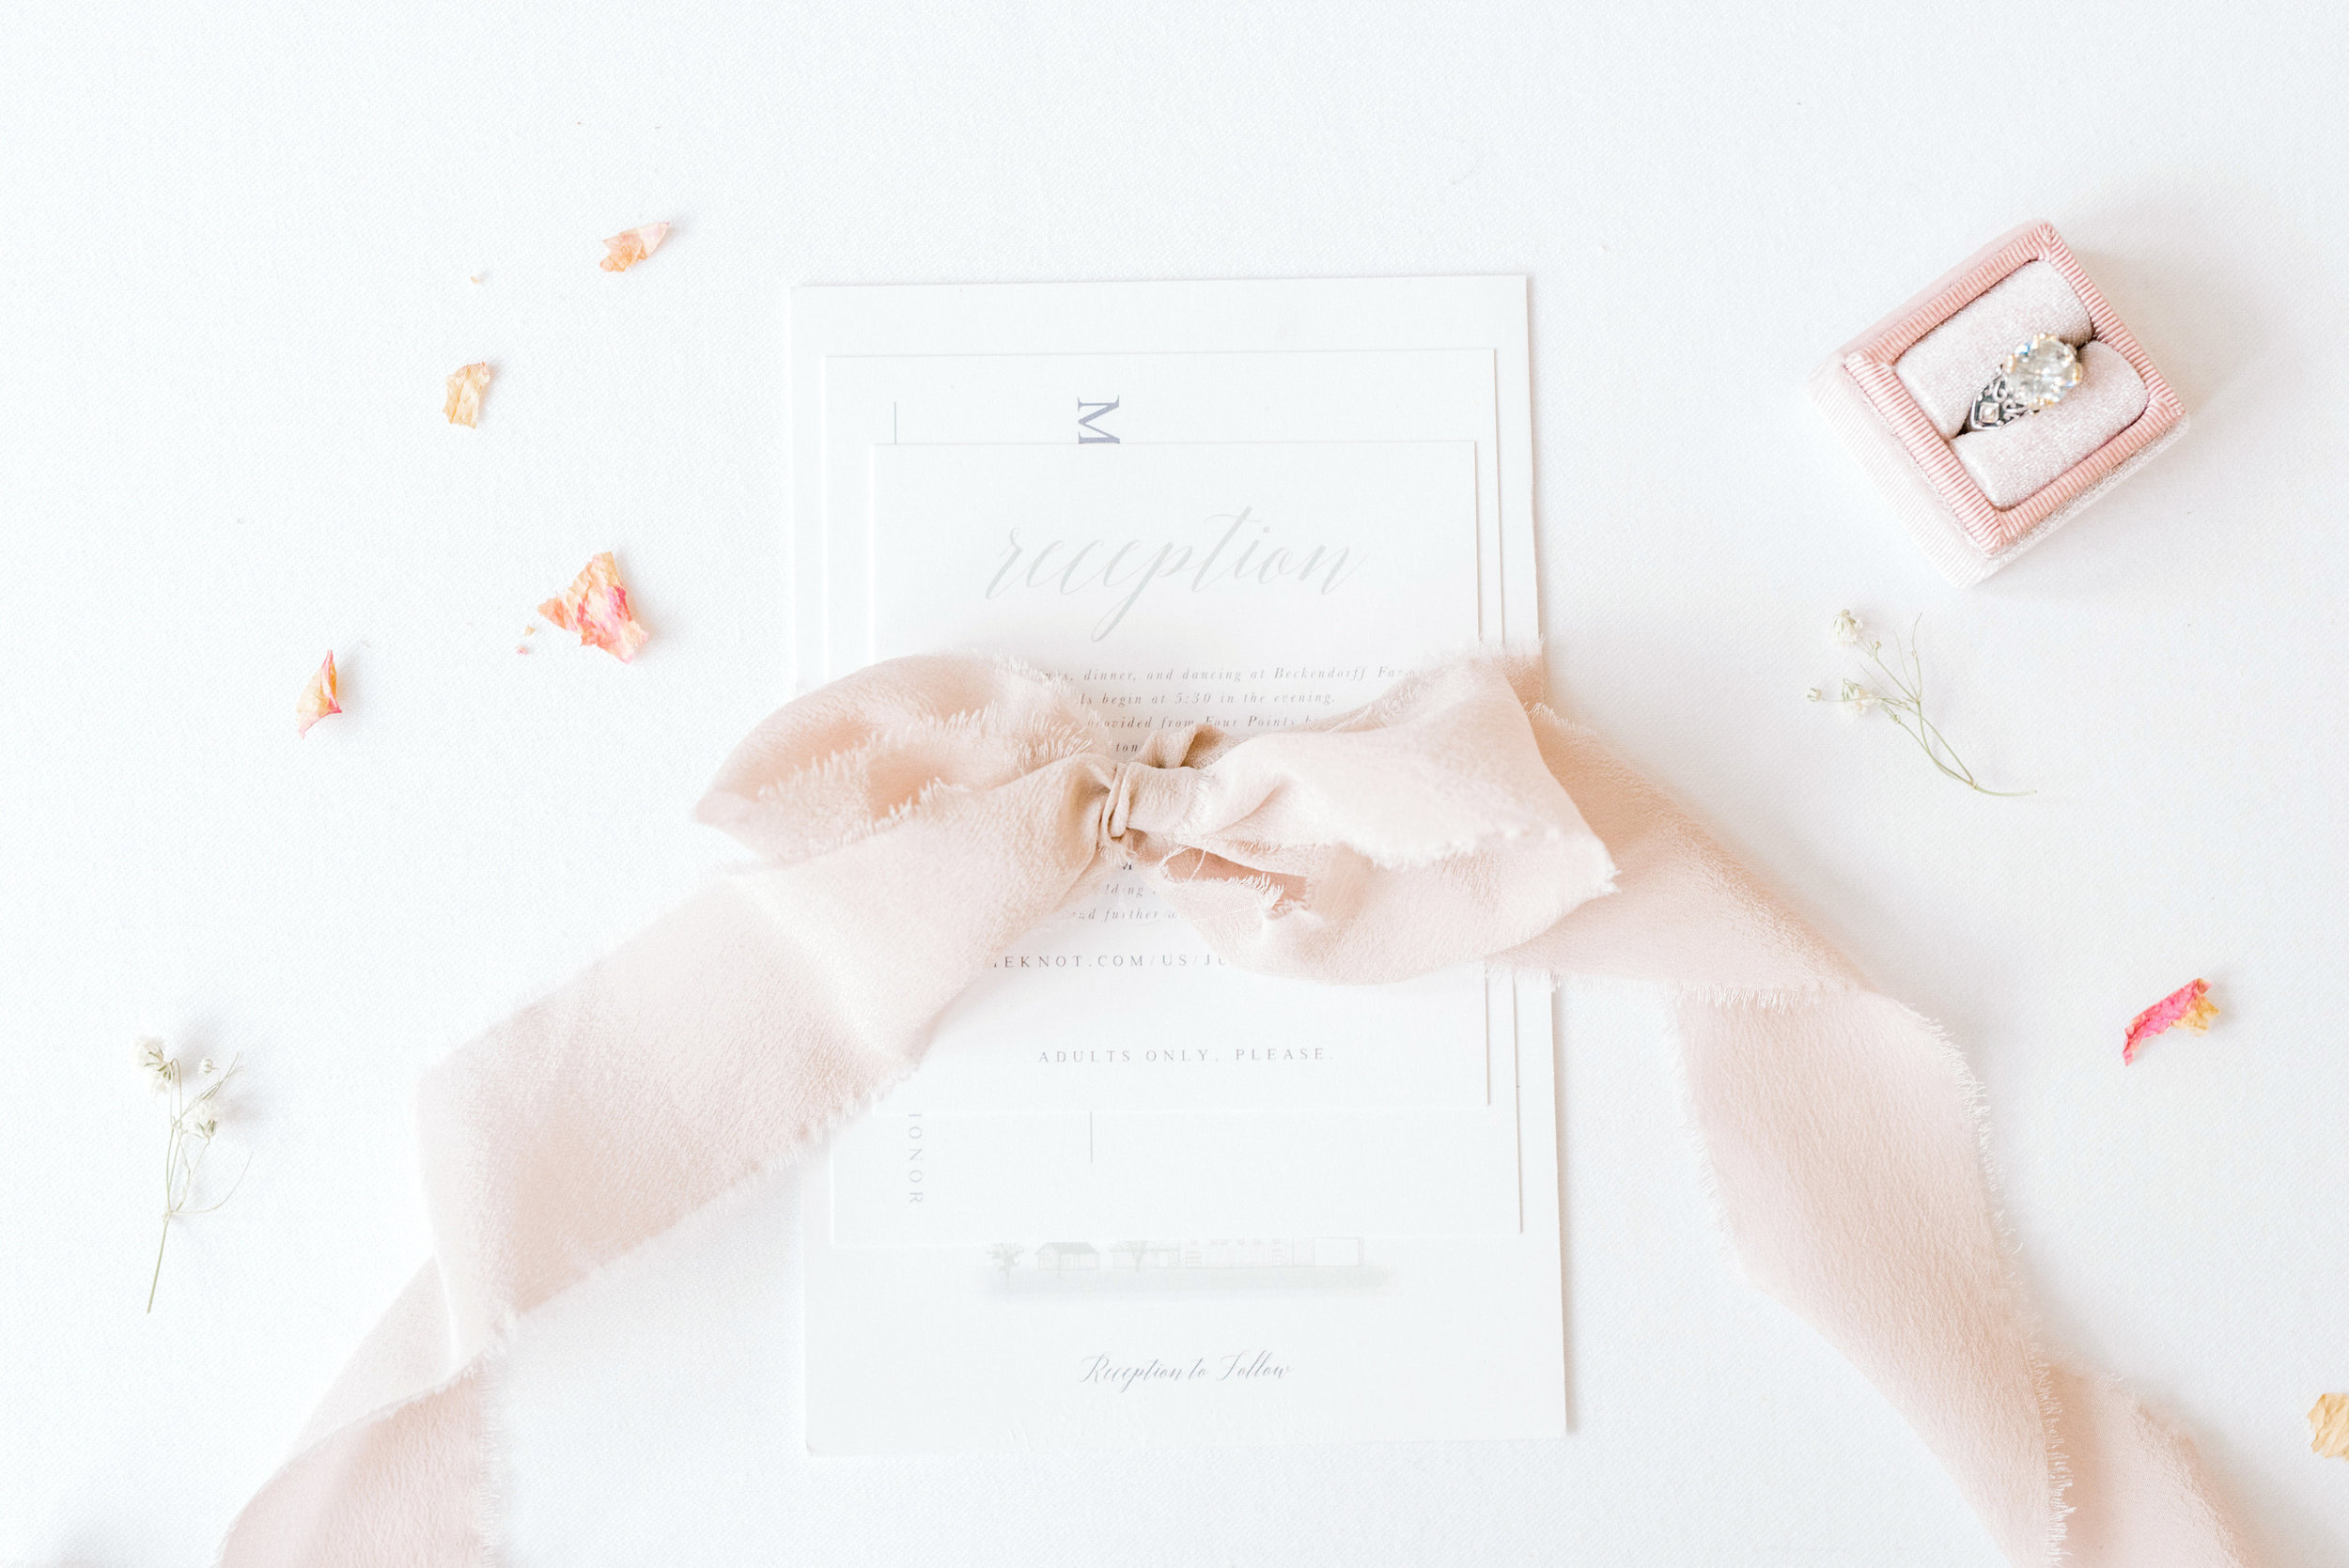 Stationery | Andrea Haughey Design  Photography | Karlee Steingrobe Photography  Planning & Styling | To Be Loved Events  Ribbon | Tono & co.